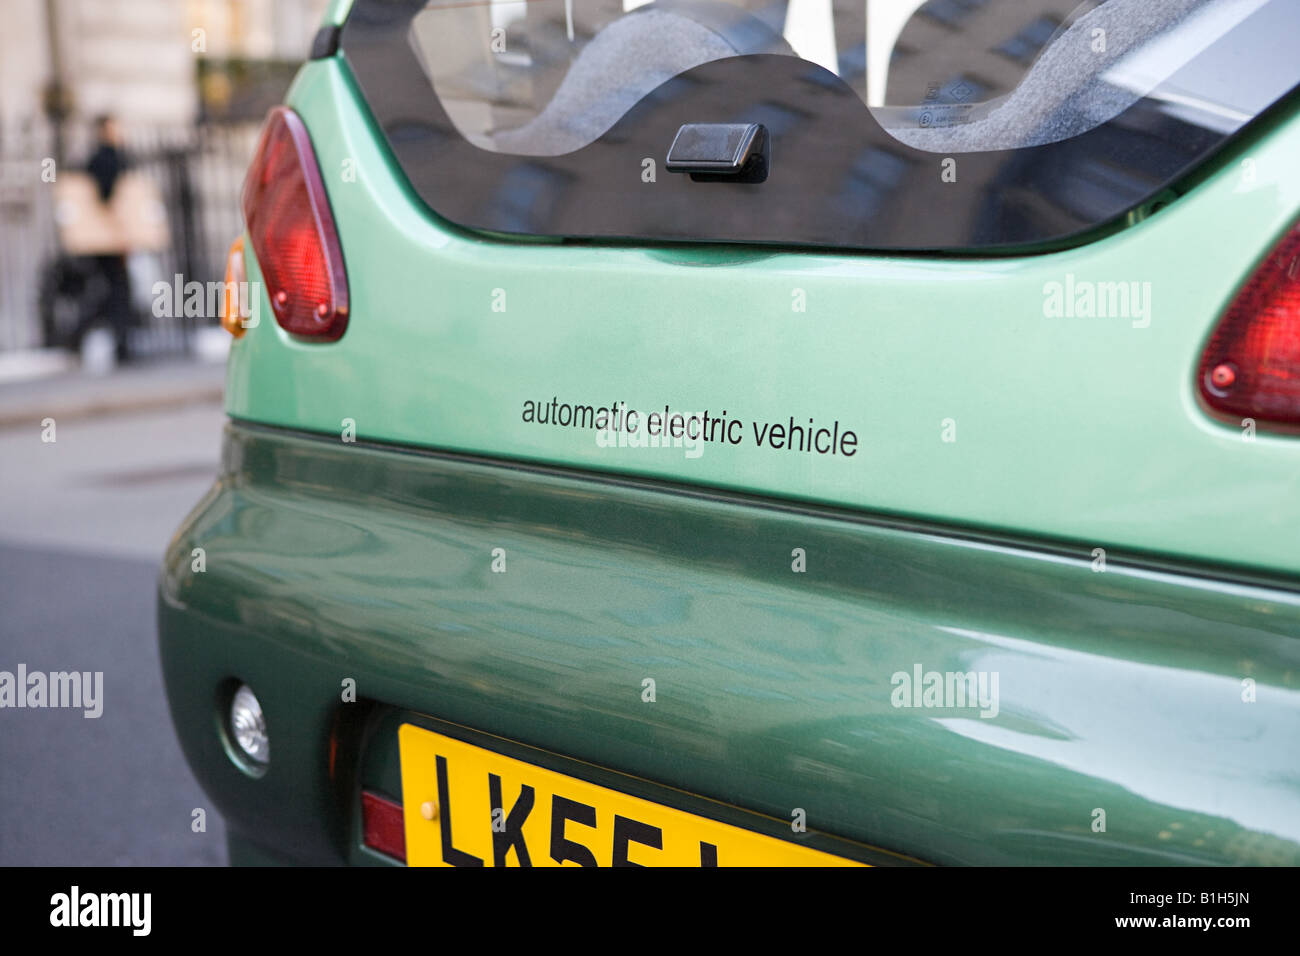 Electric car - Stock Image